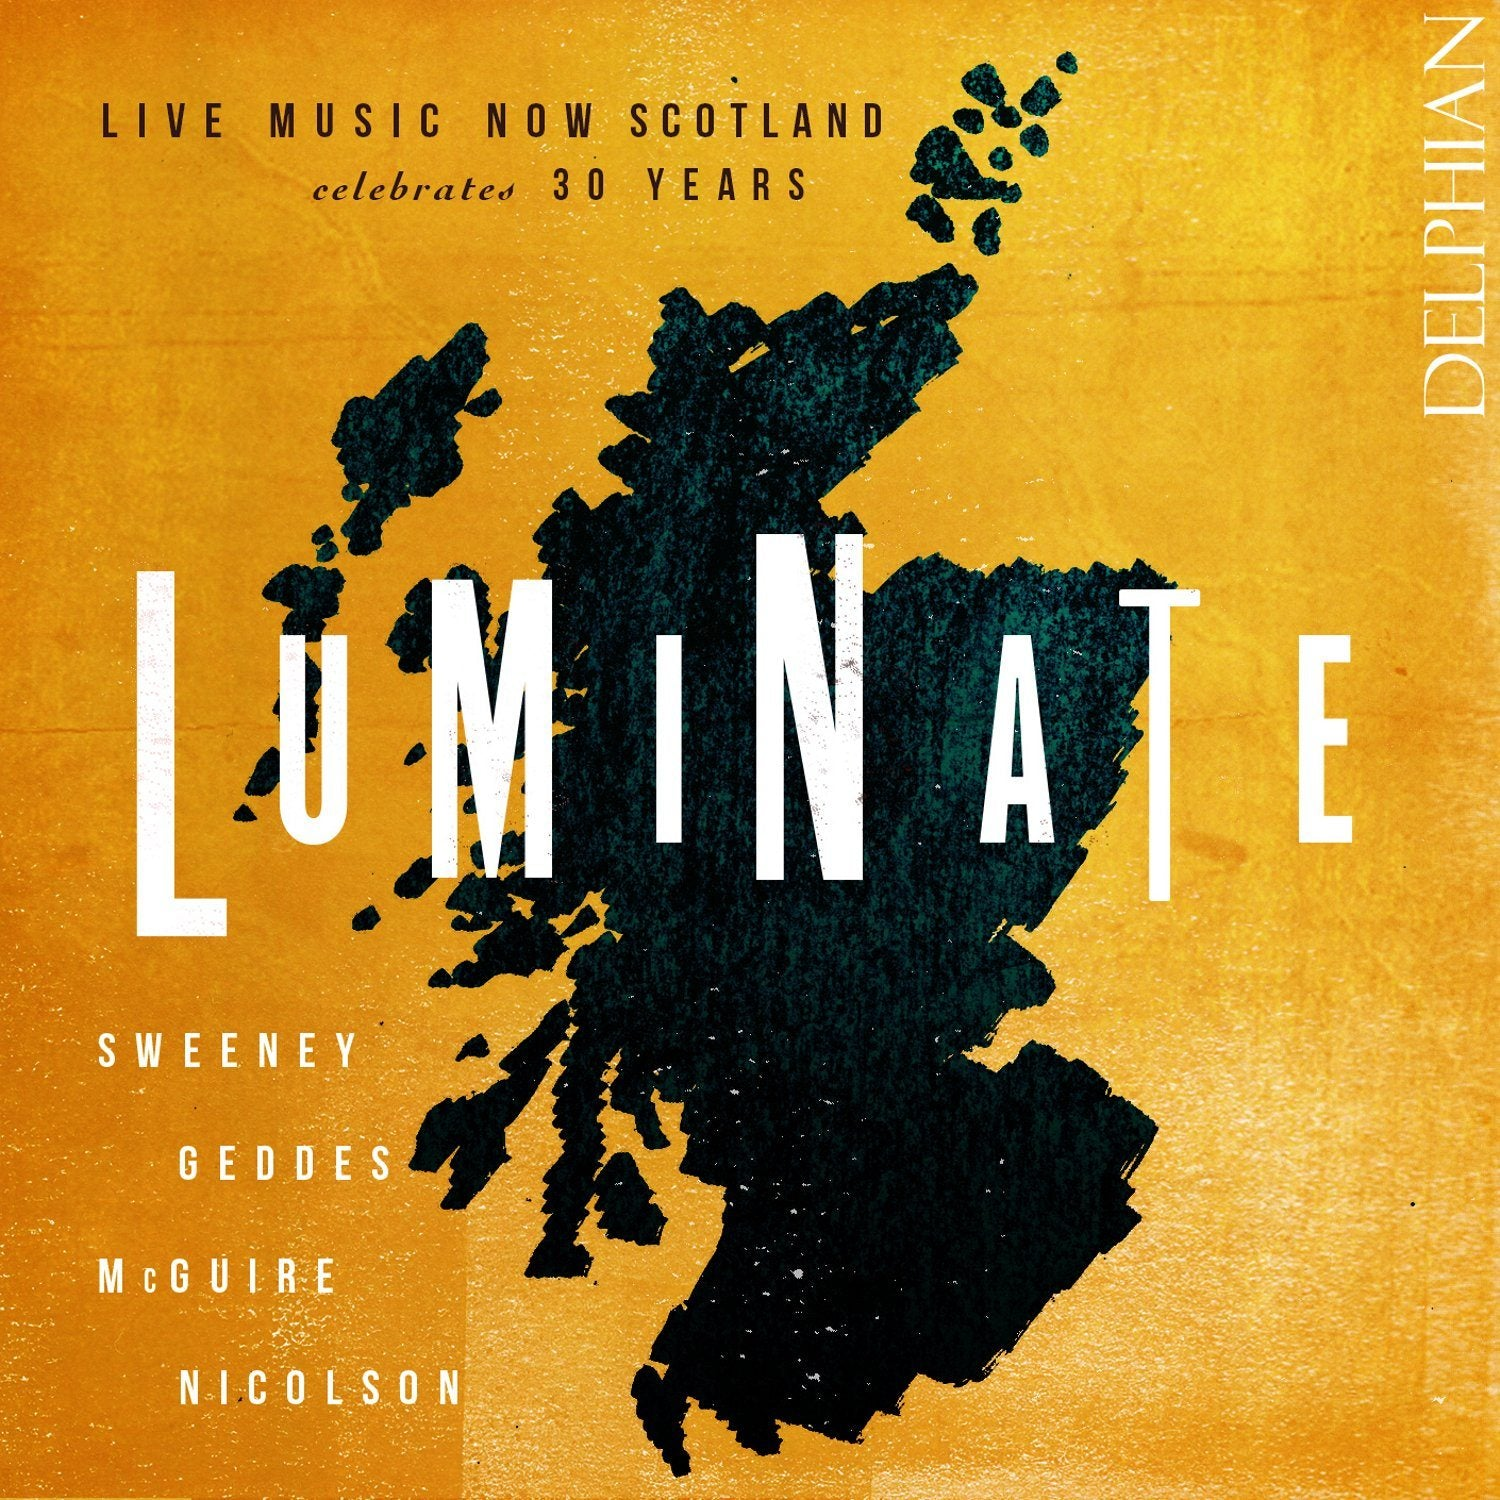 Luminate: Live Music Now Scotland celebrates 30 years CD Delphian Records